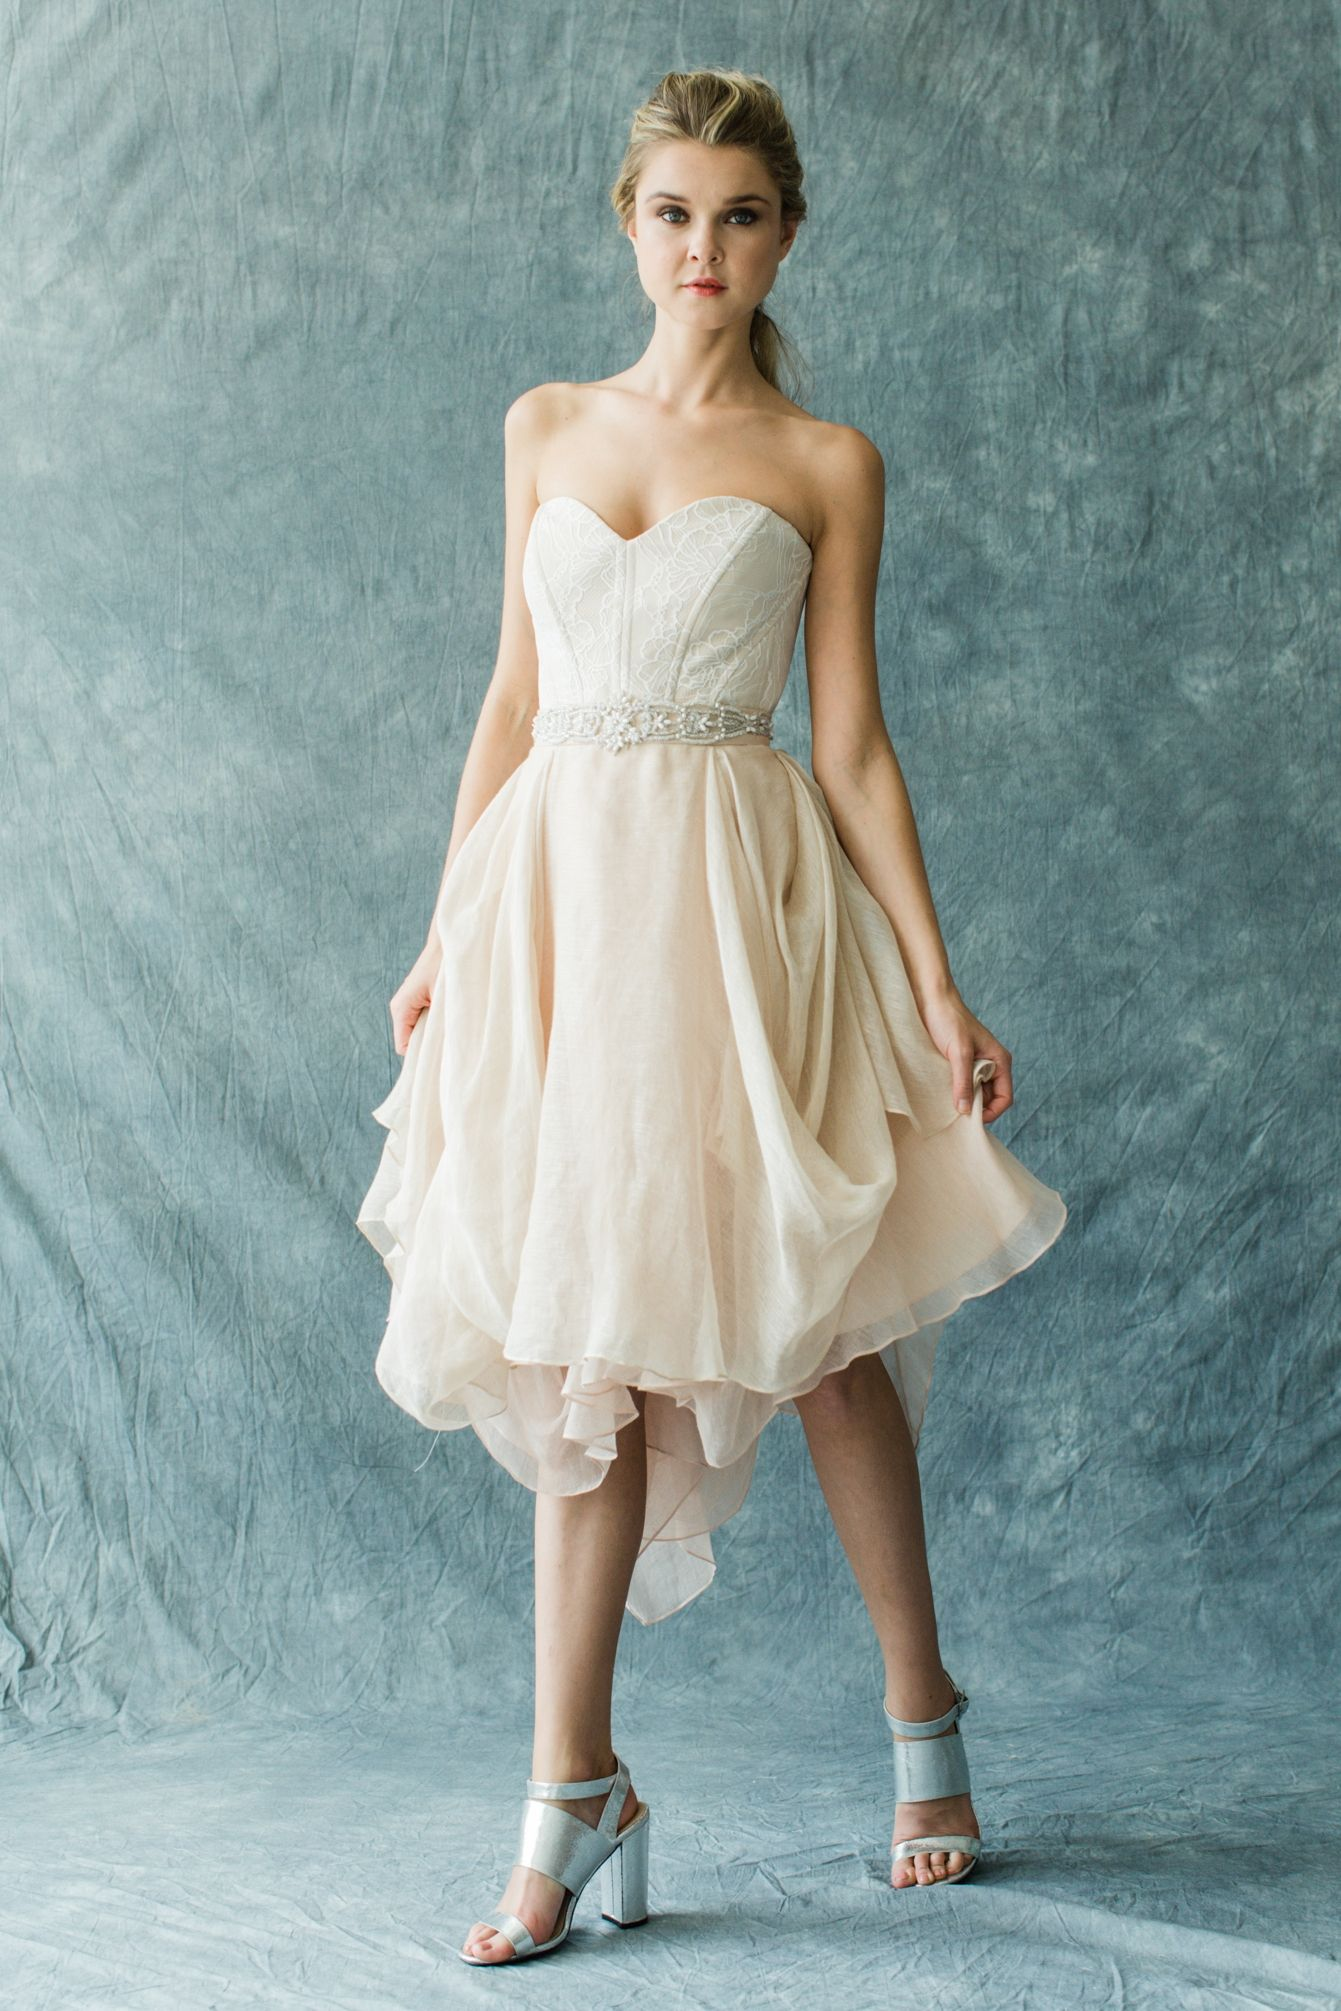 The short version of our favorite Kensington gown! Pair with an easy ...